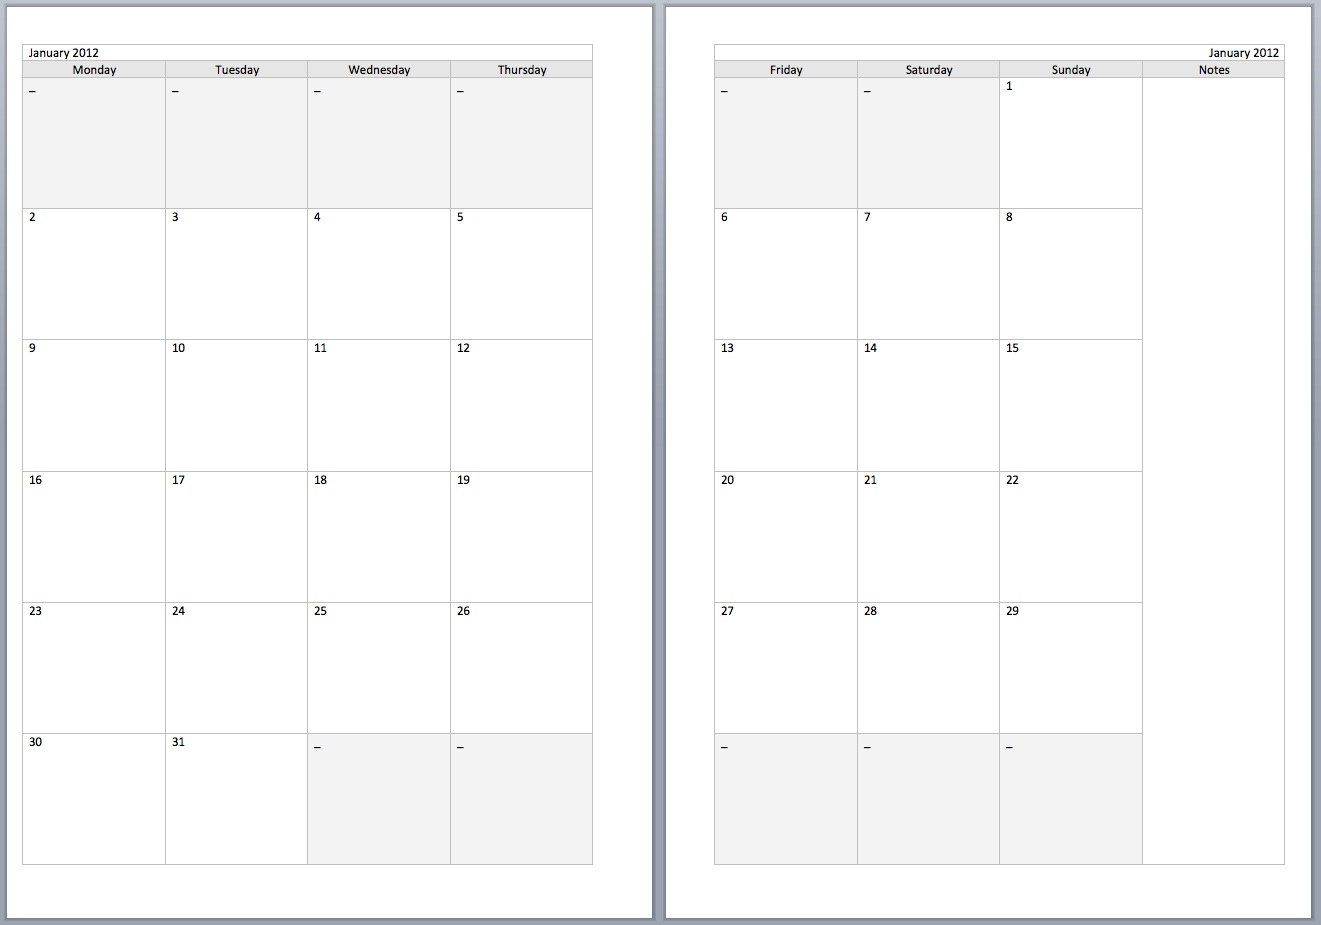 A5 Lined Paper Template timetables as free printable templates – College Ruled Lined Paper Template